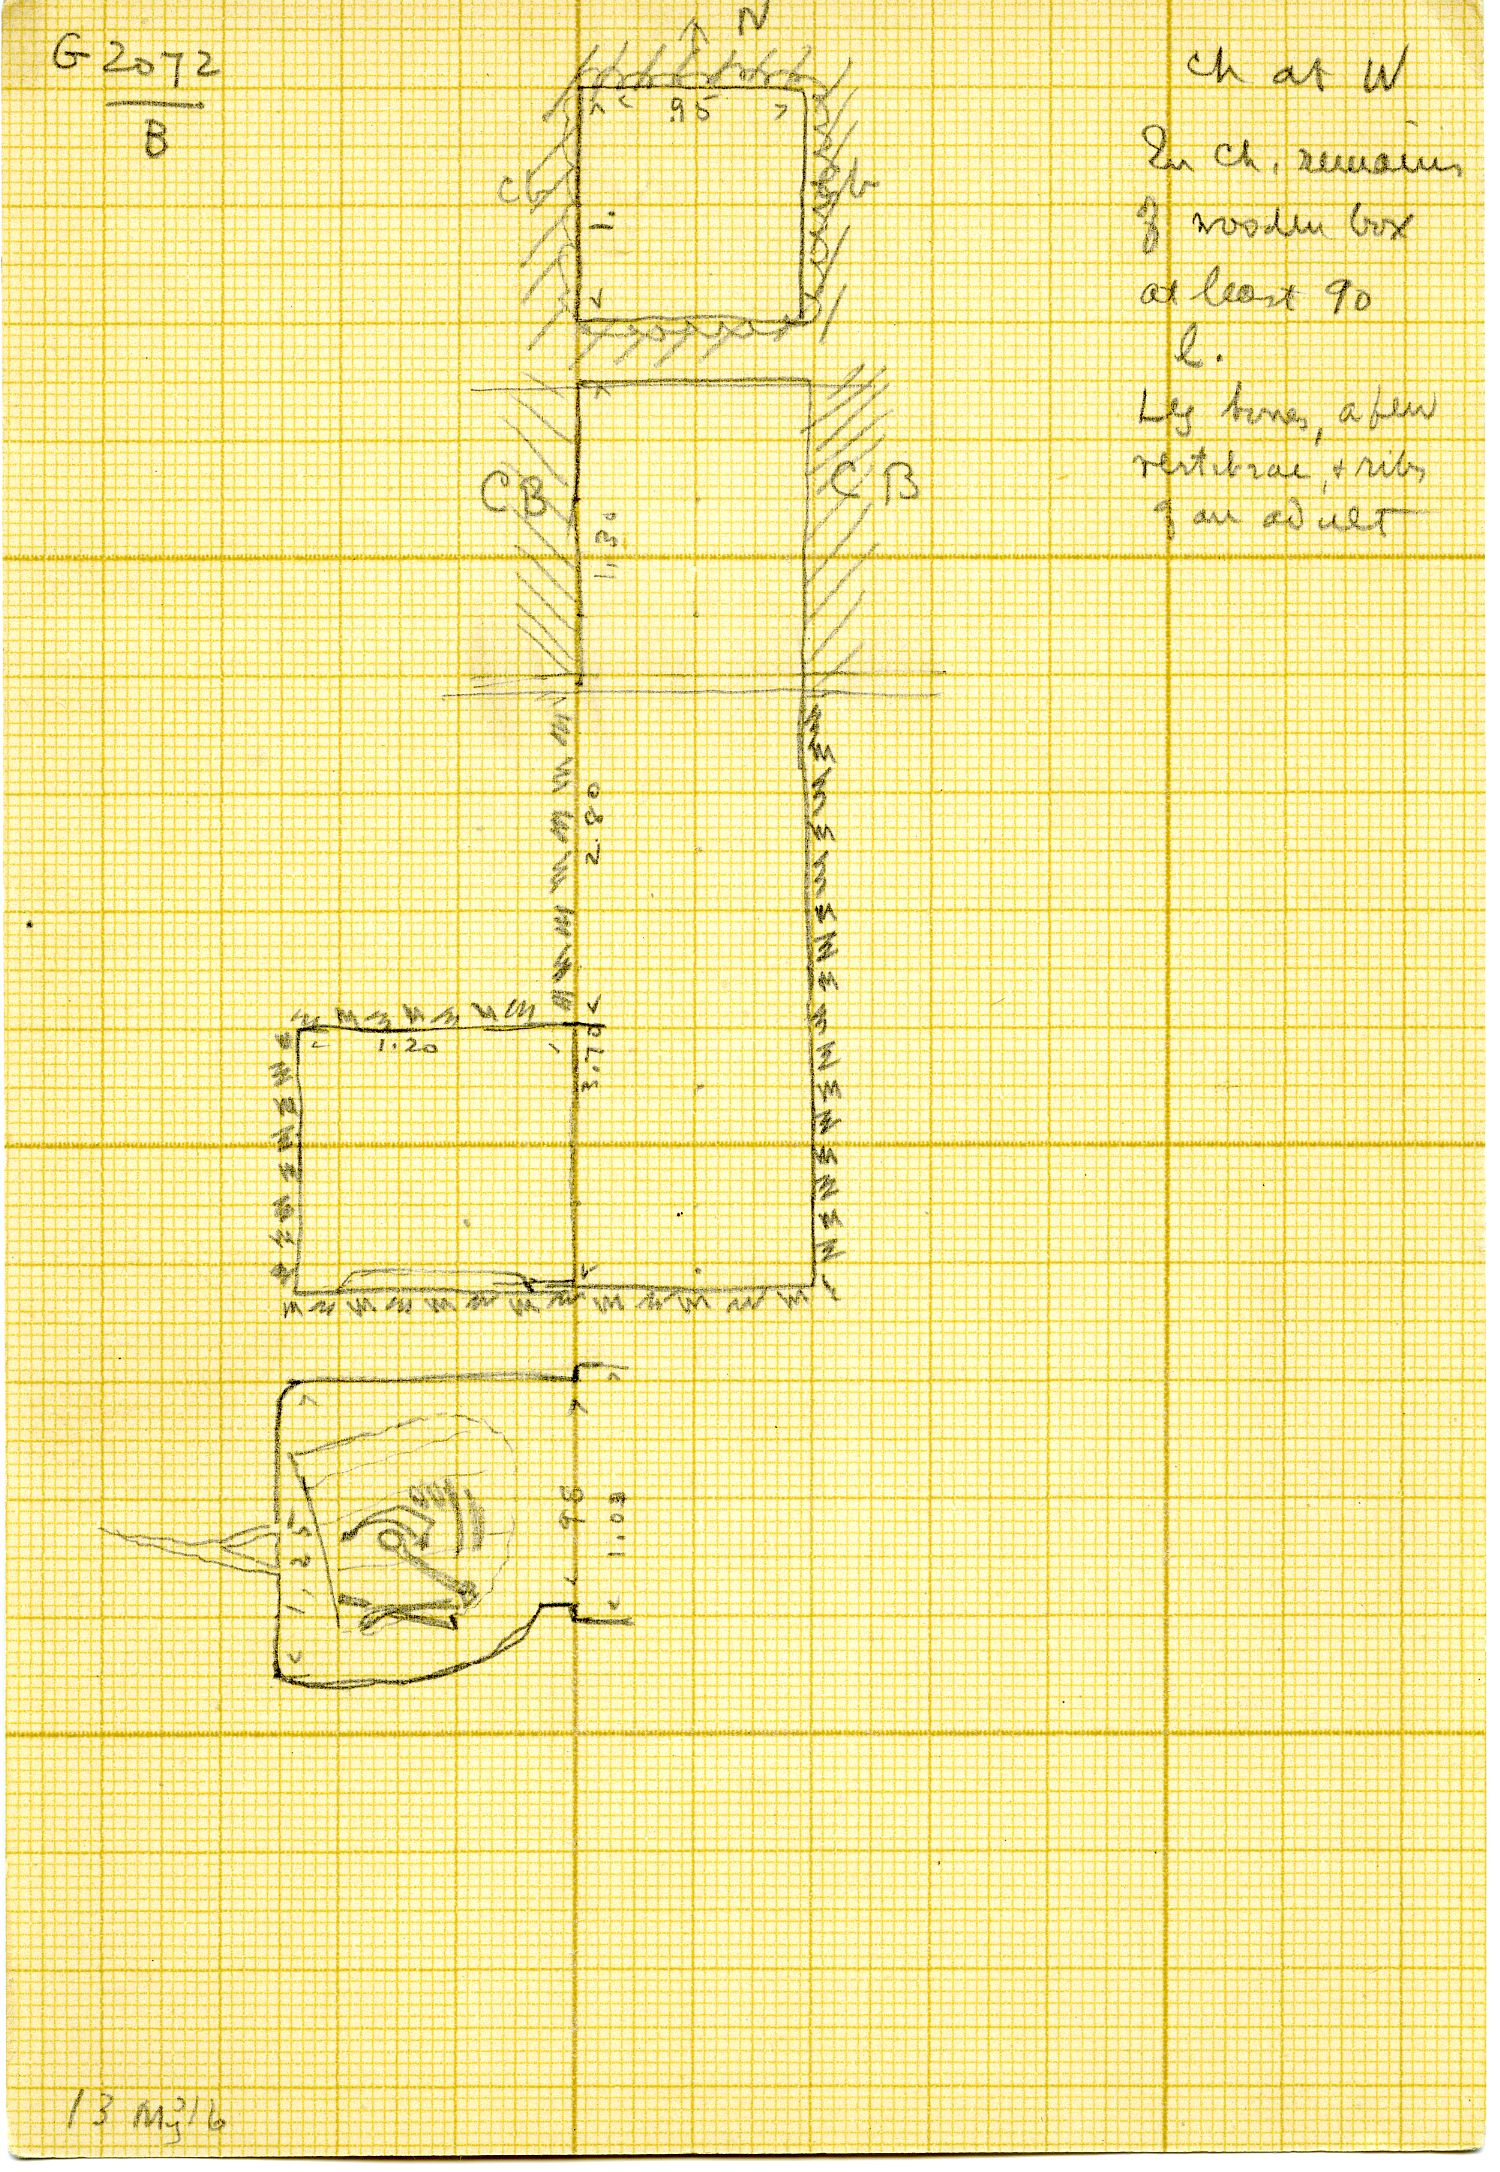 Maps and plans: G 3072, Shaft B